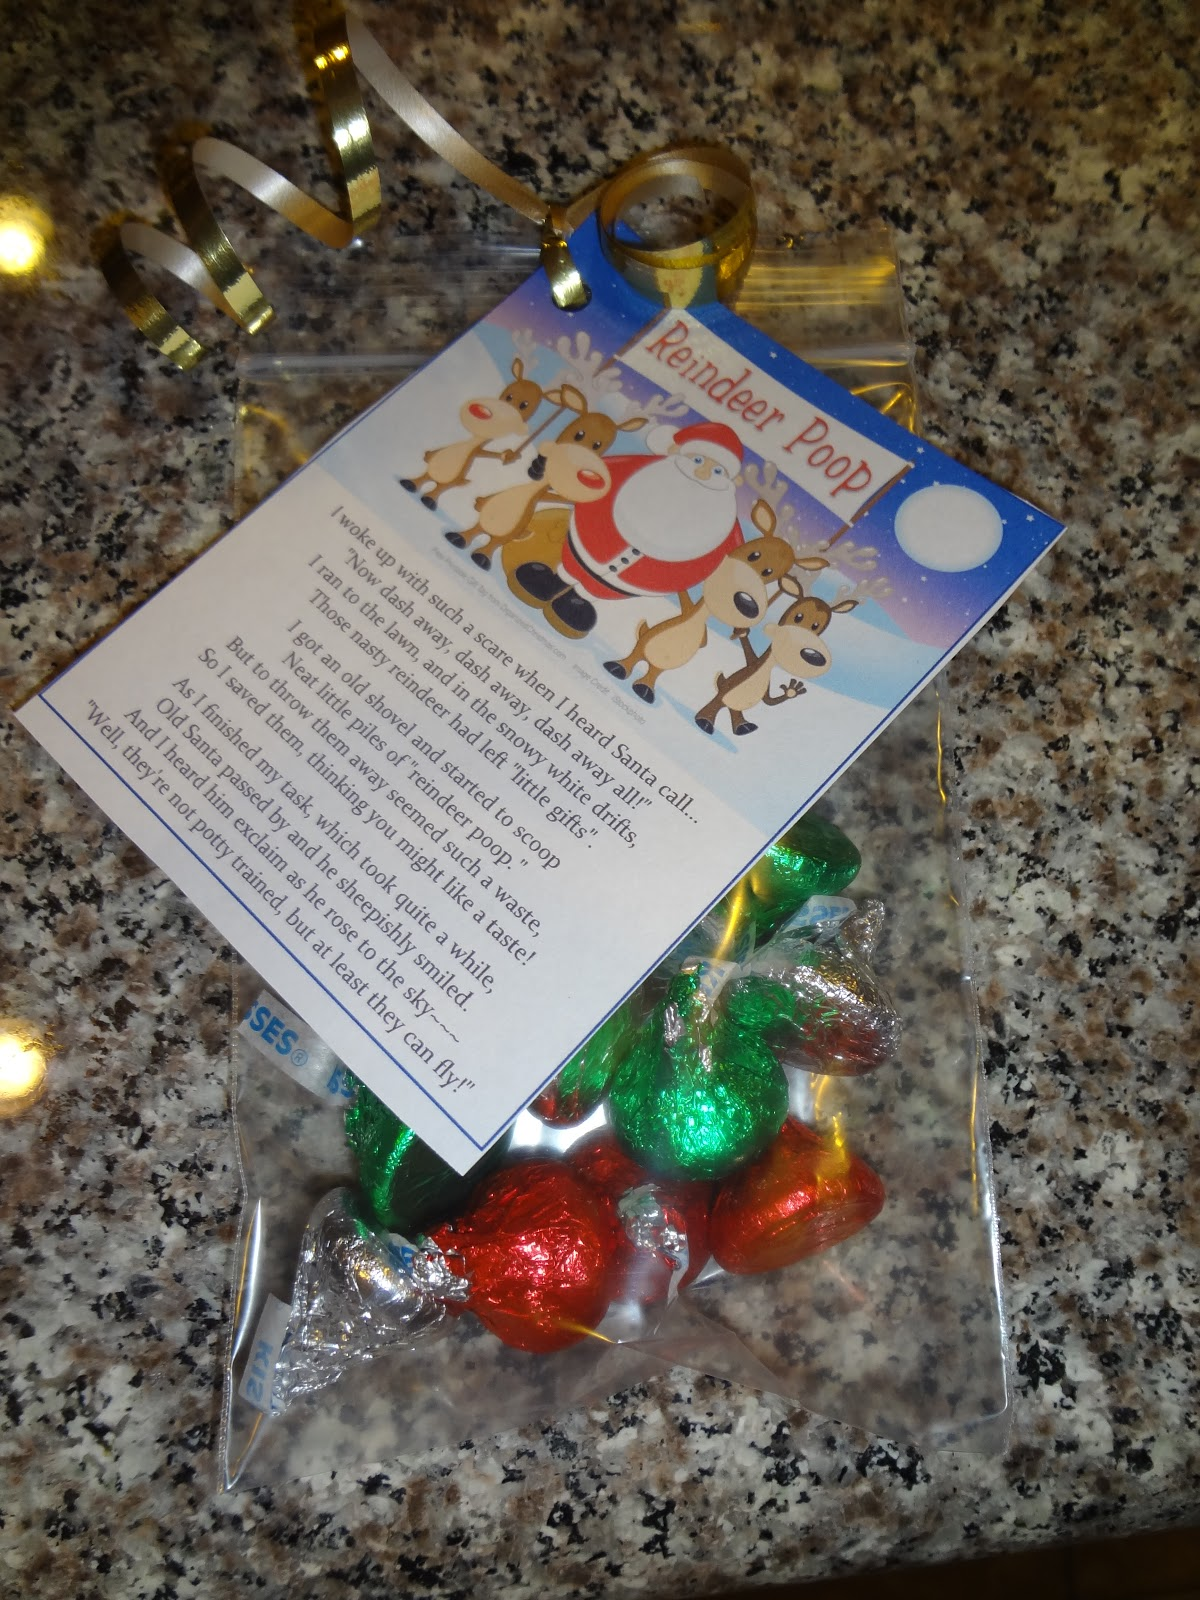 ... Household One Blog at a Time: Christmas Crafts, Crafts and More Crafts